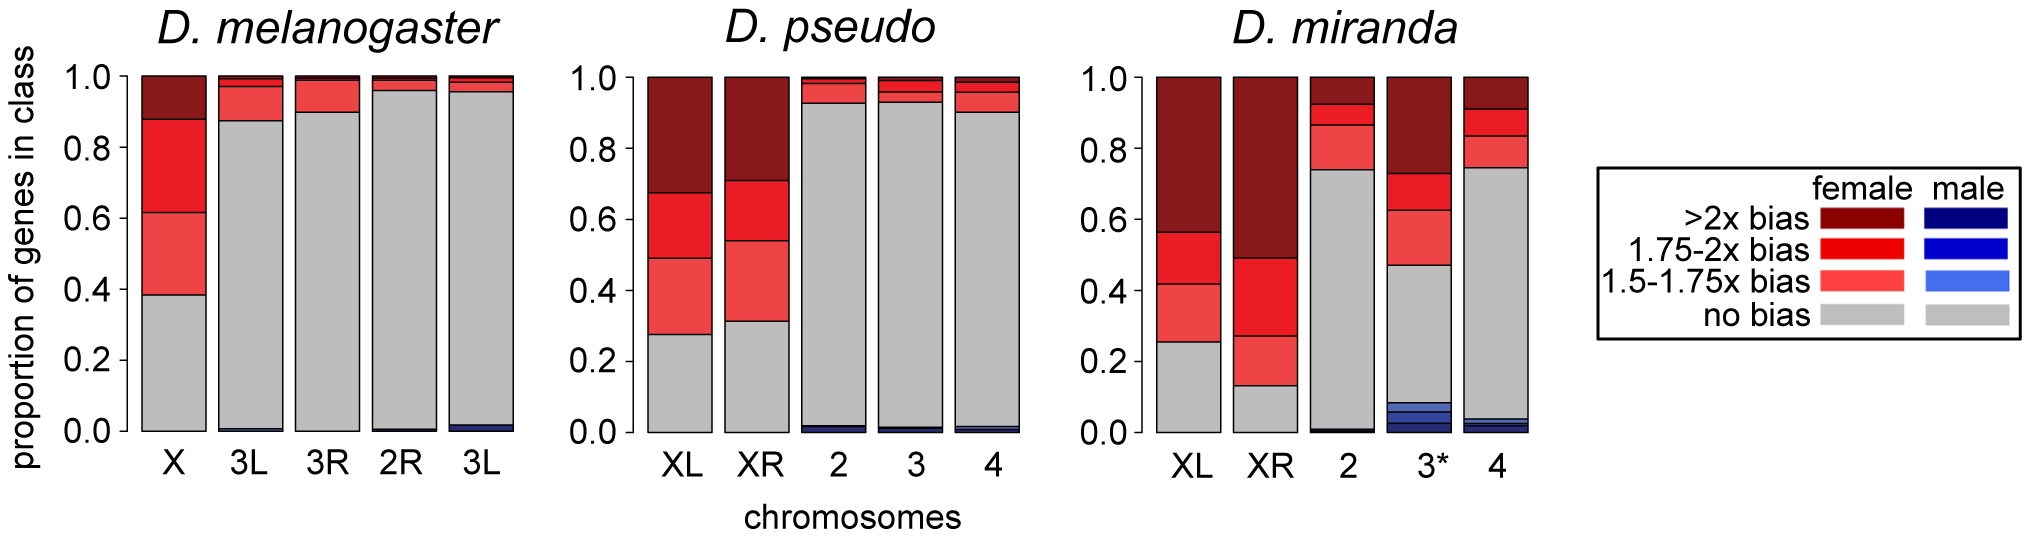 Sex-bias of transcripts in embryo at one timepoint across three species.